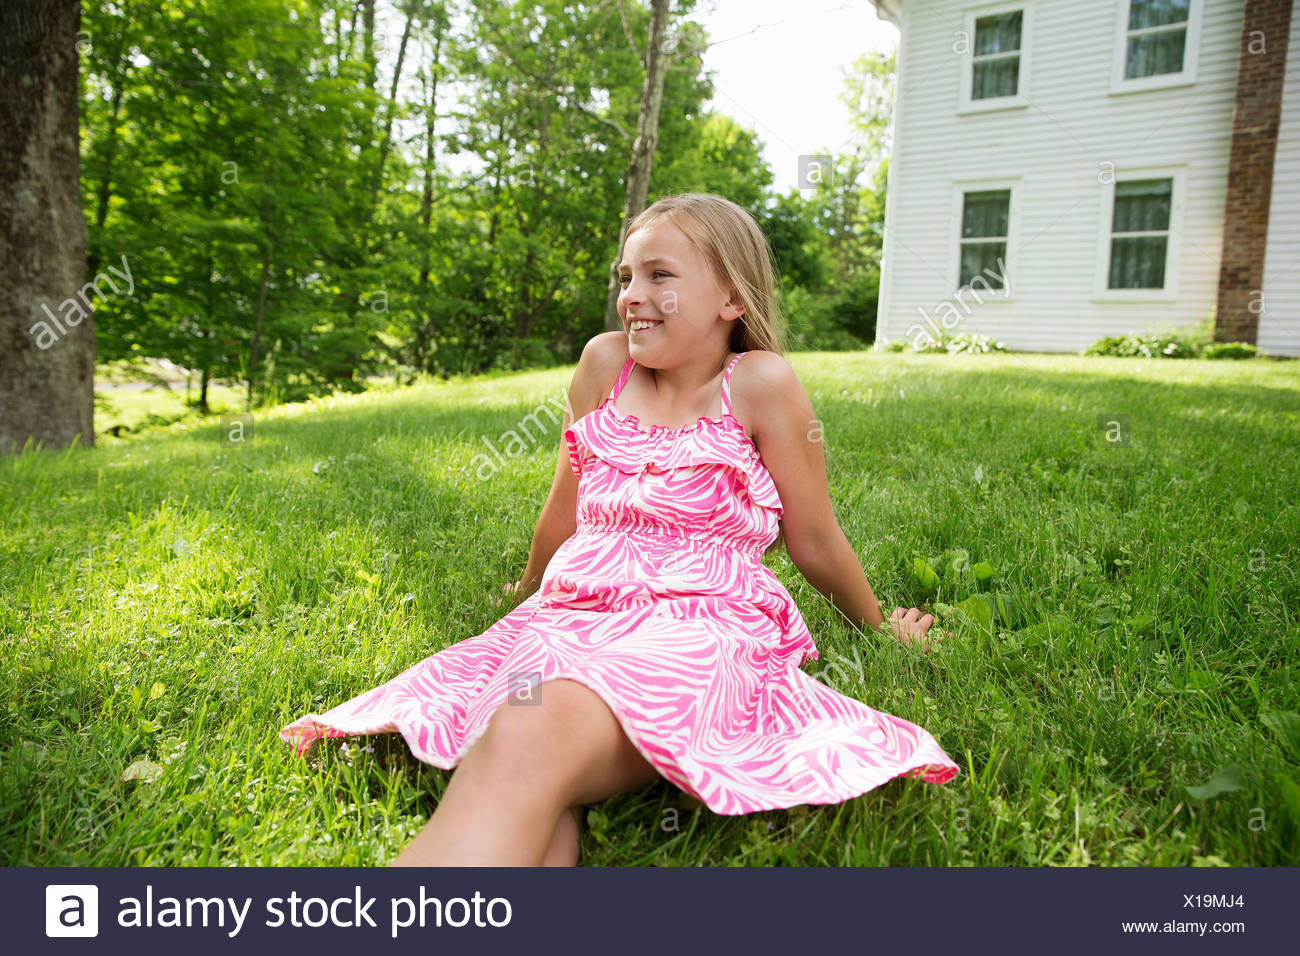 A young girl in a pink patterned sundress sitting on the grass under the trees in a farmhouse garden. - Stock Image